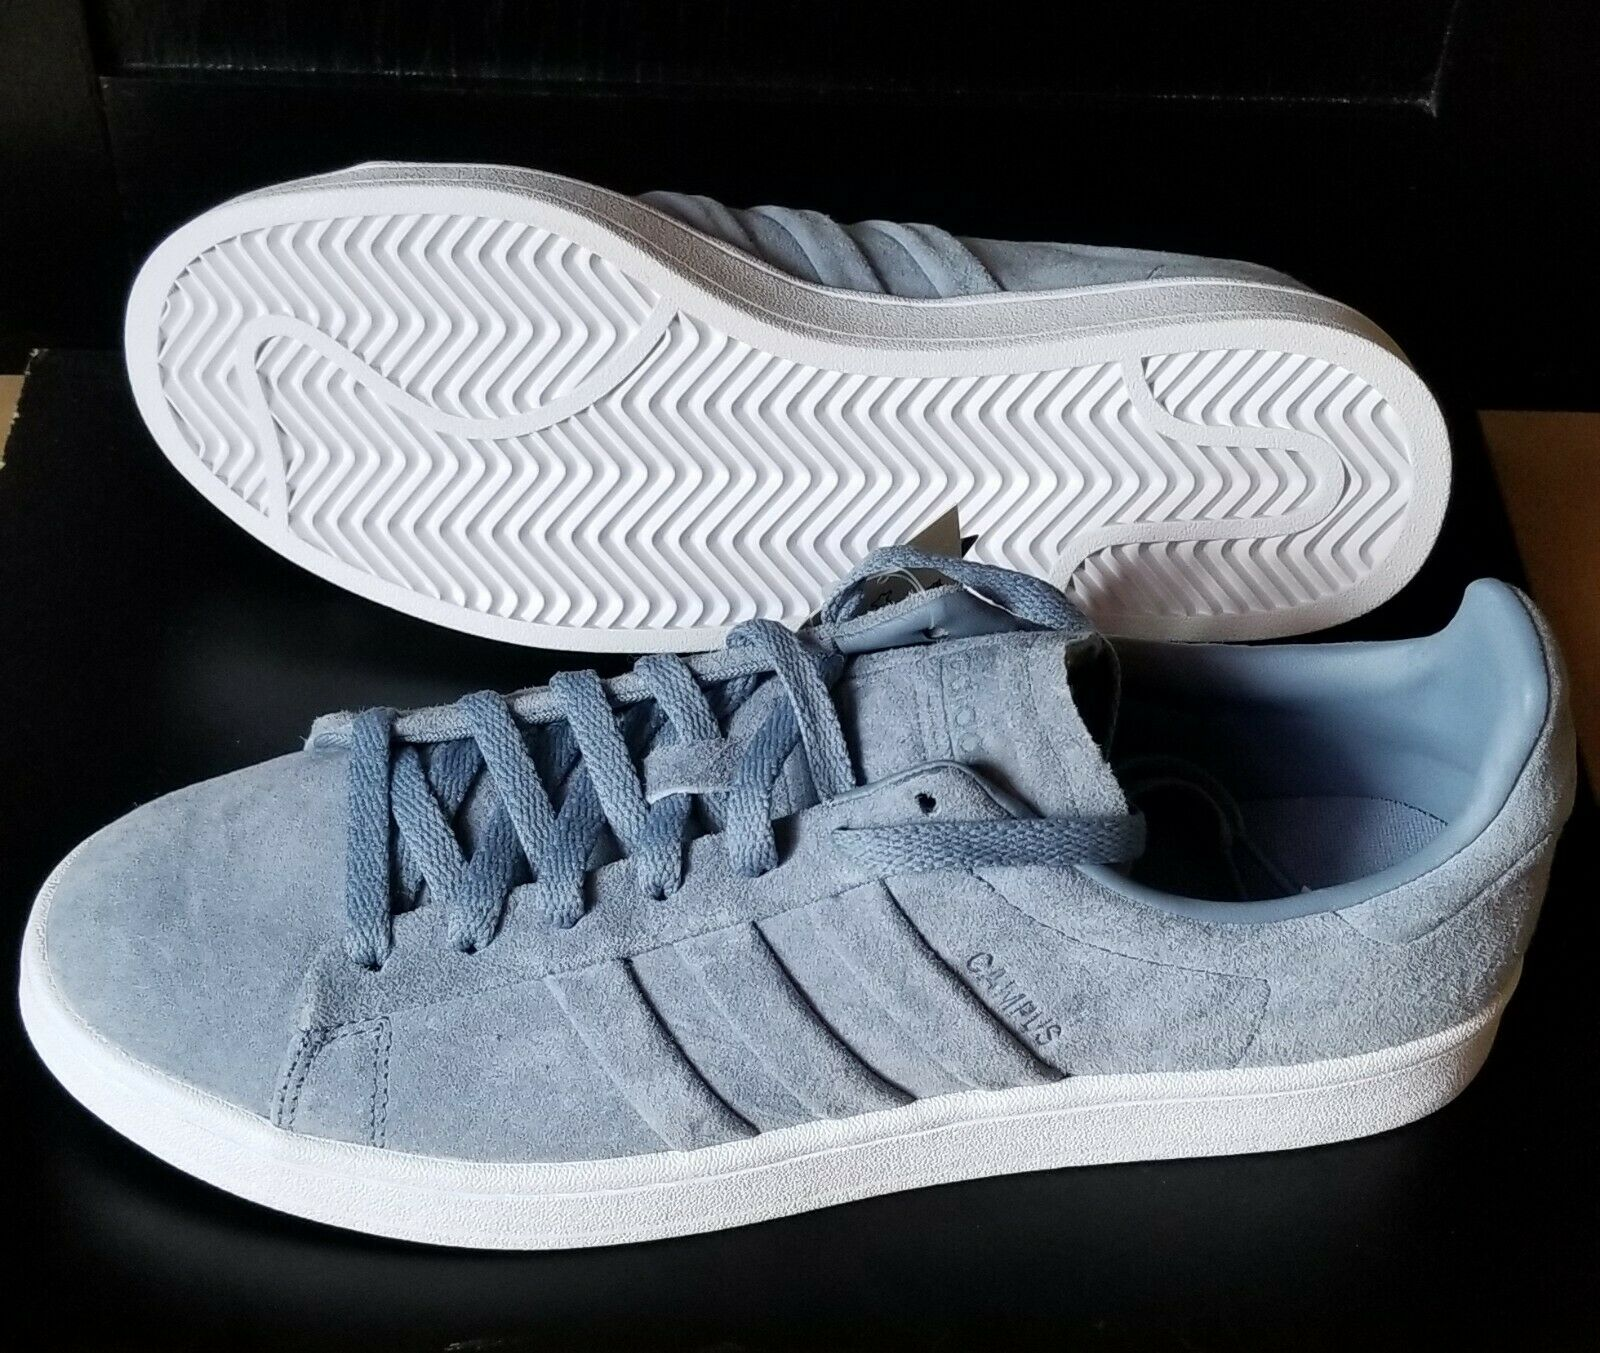 55e8b315912350 Adidas CQ2471 Campus Stitch and Turn Running shoes bluee Grey White Sneaker  US 10